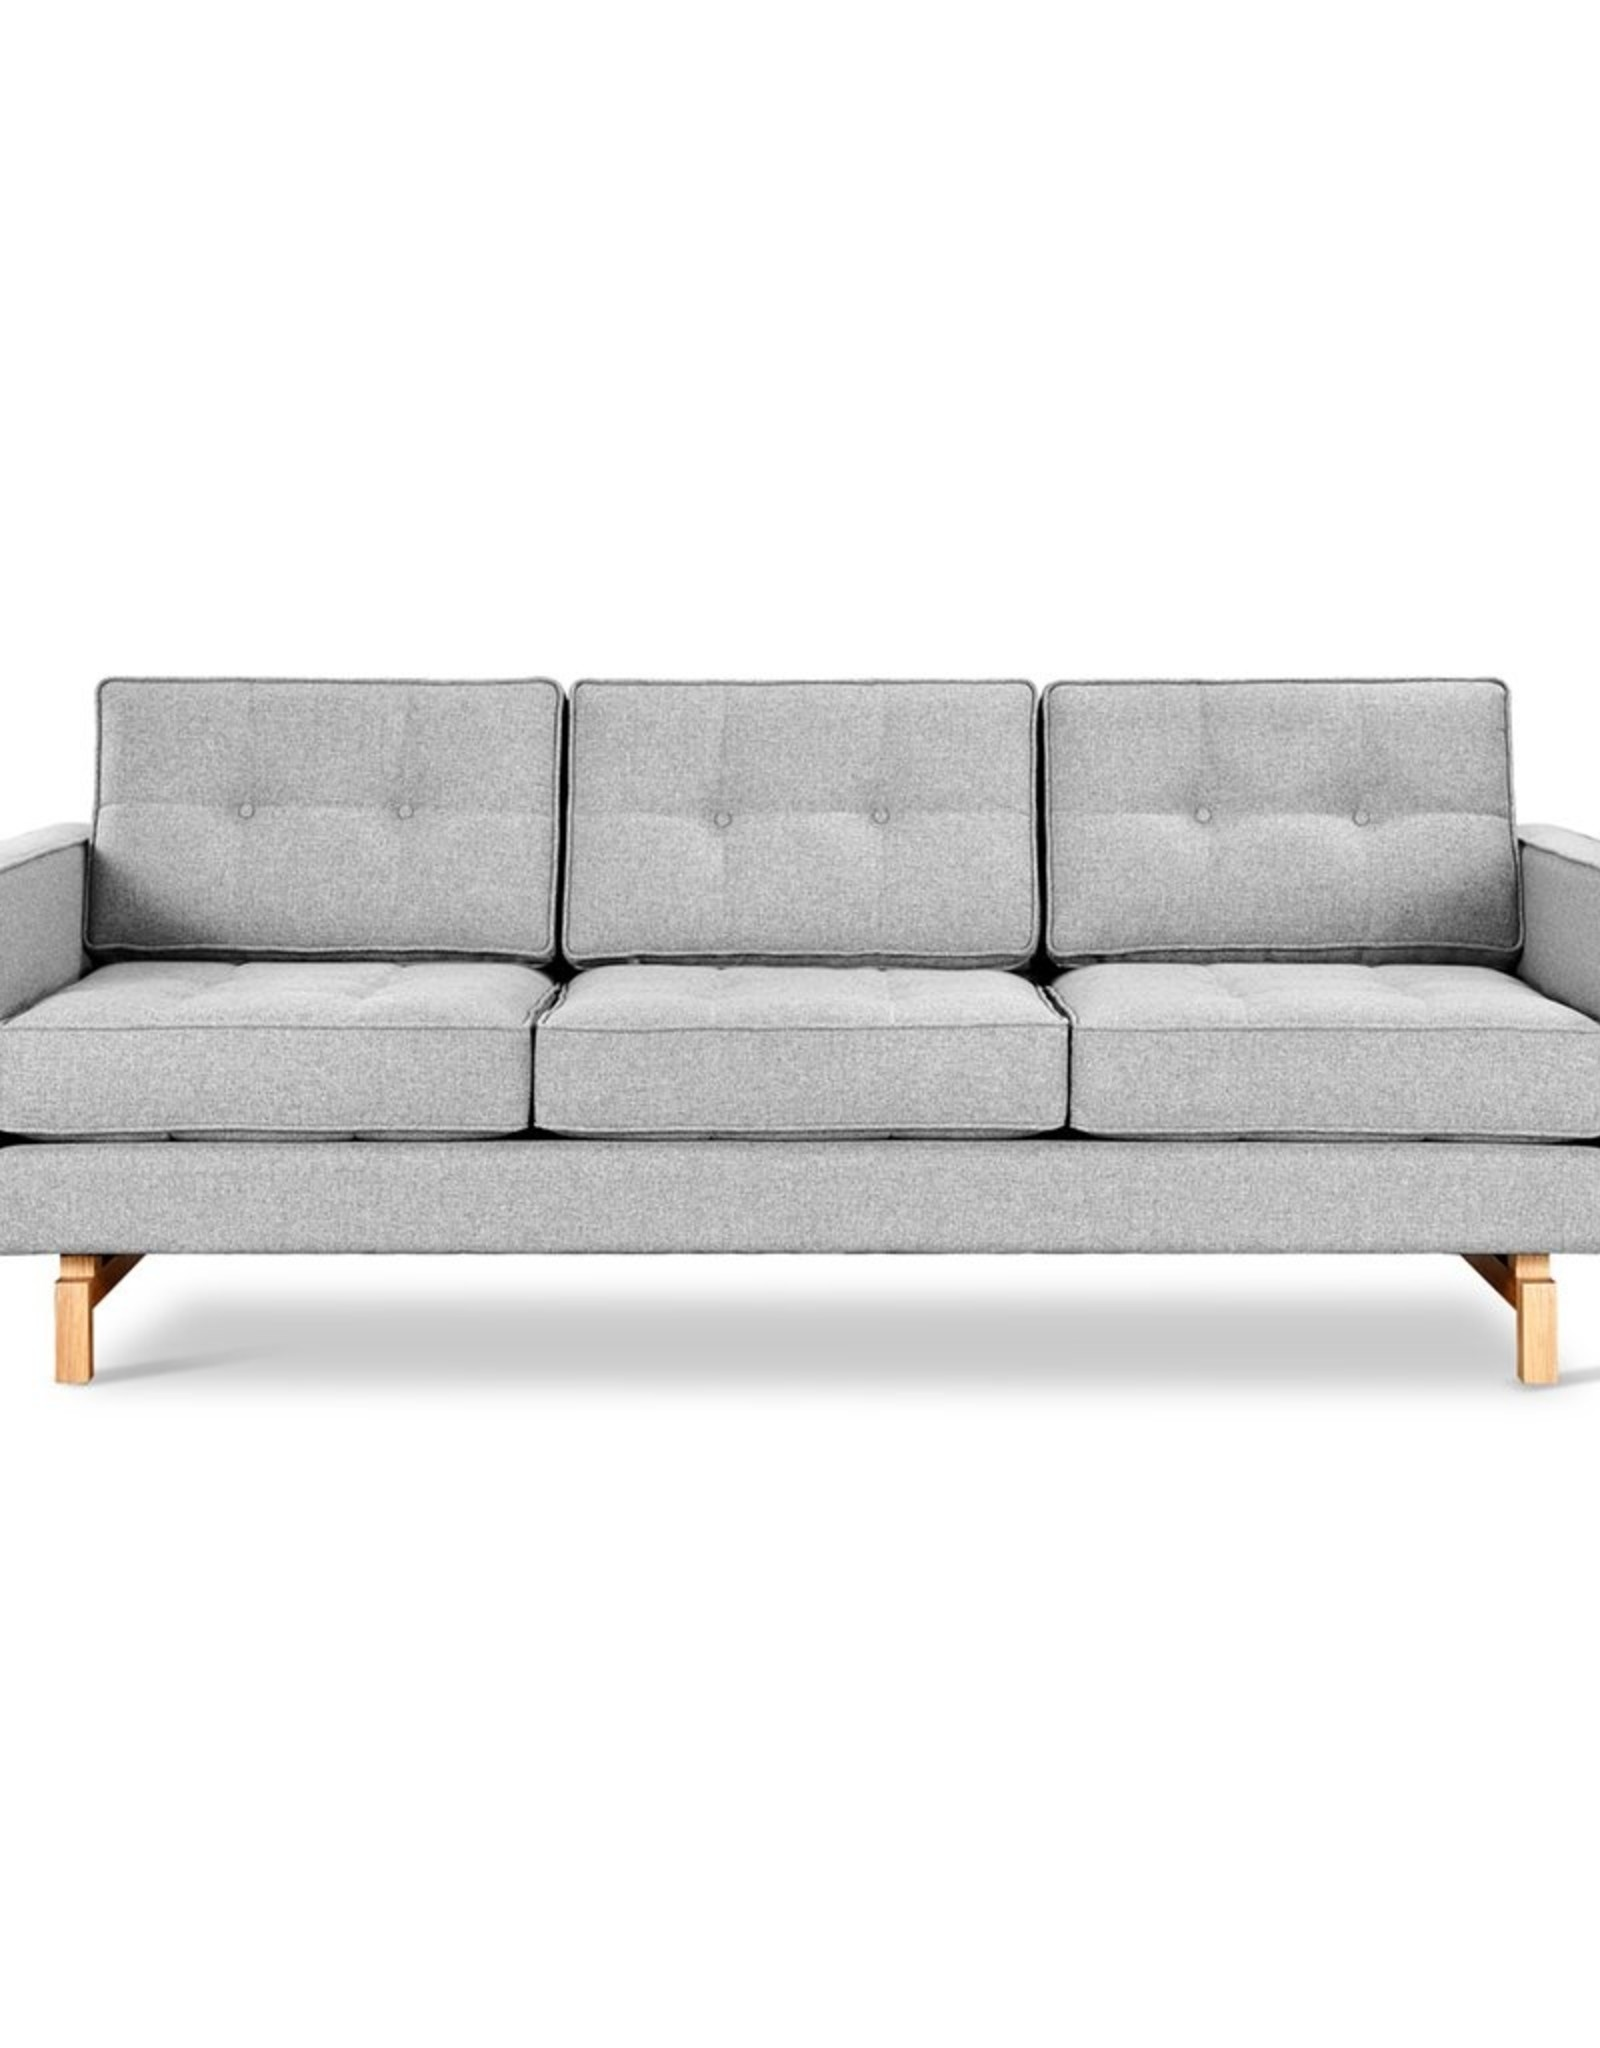 Gus* Modern Jane 2 Sofa, Natural Ash Base